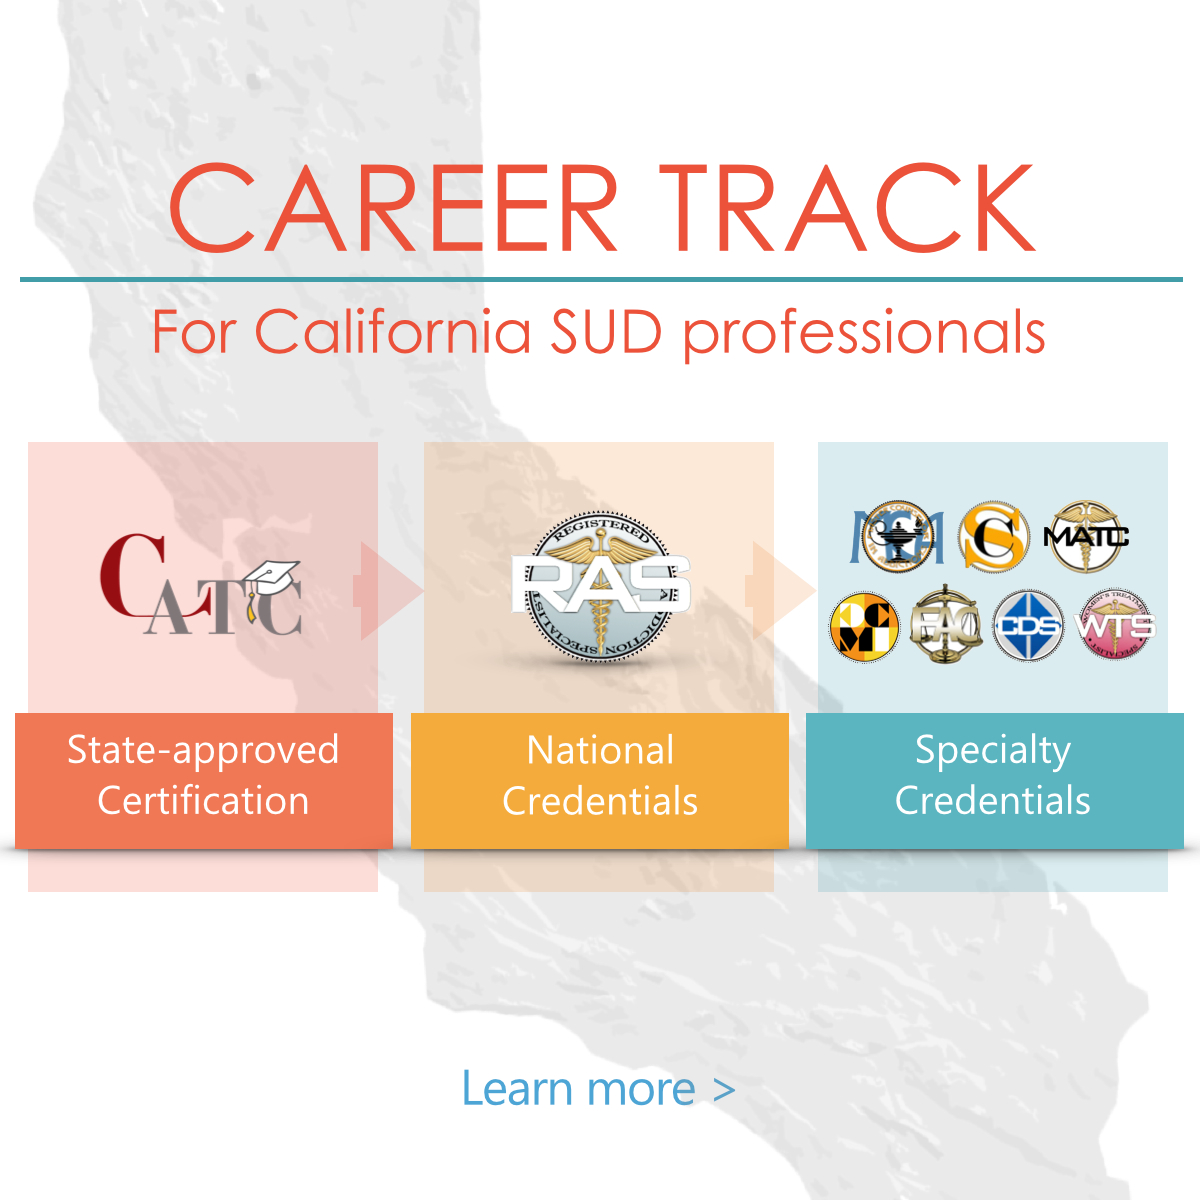 Calif Career Track 160905.001